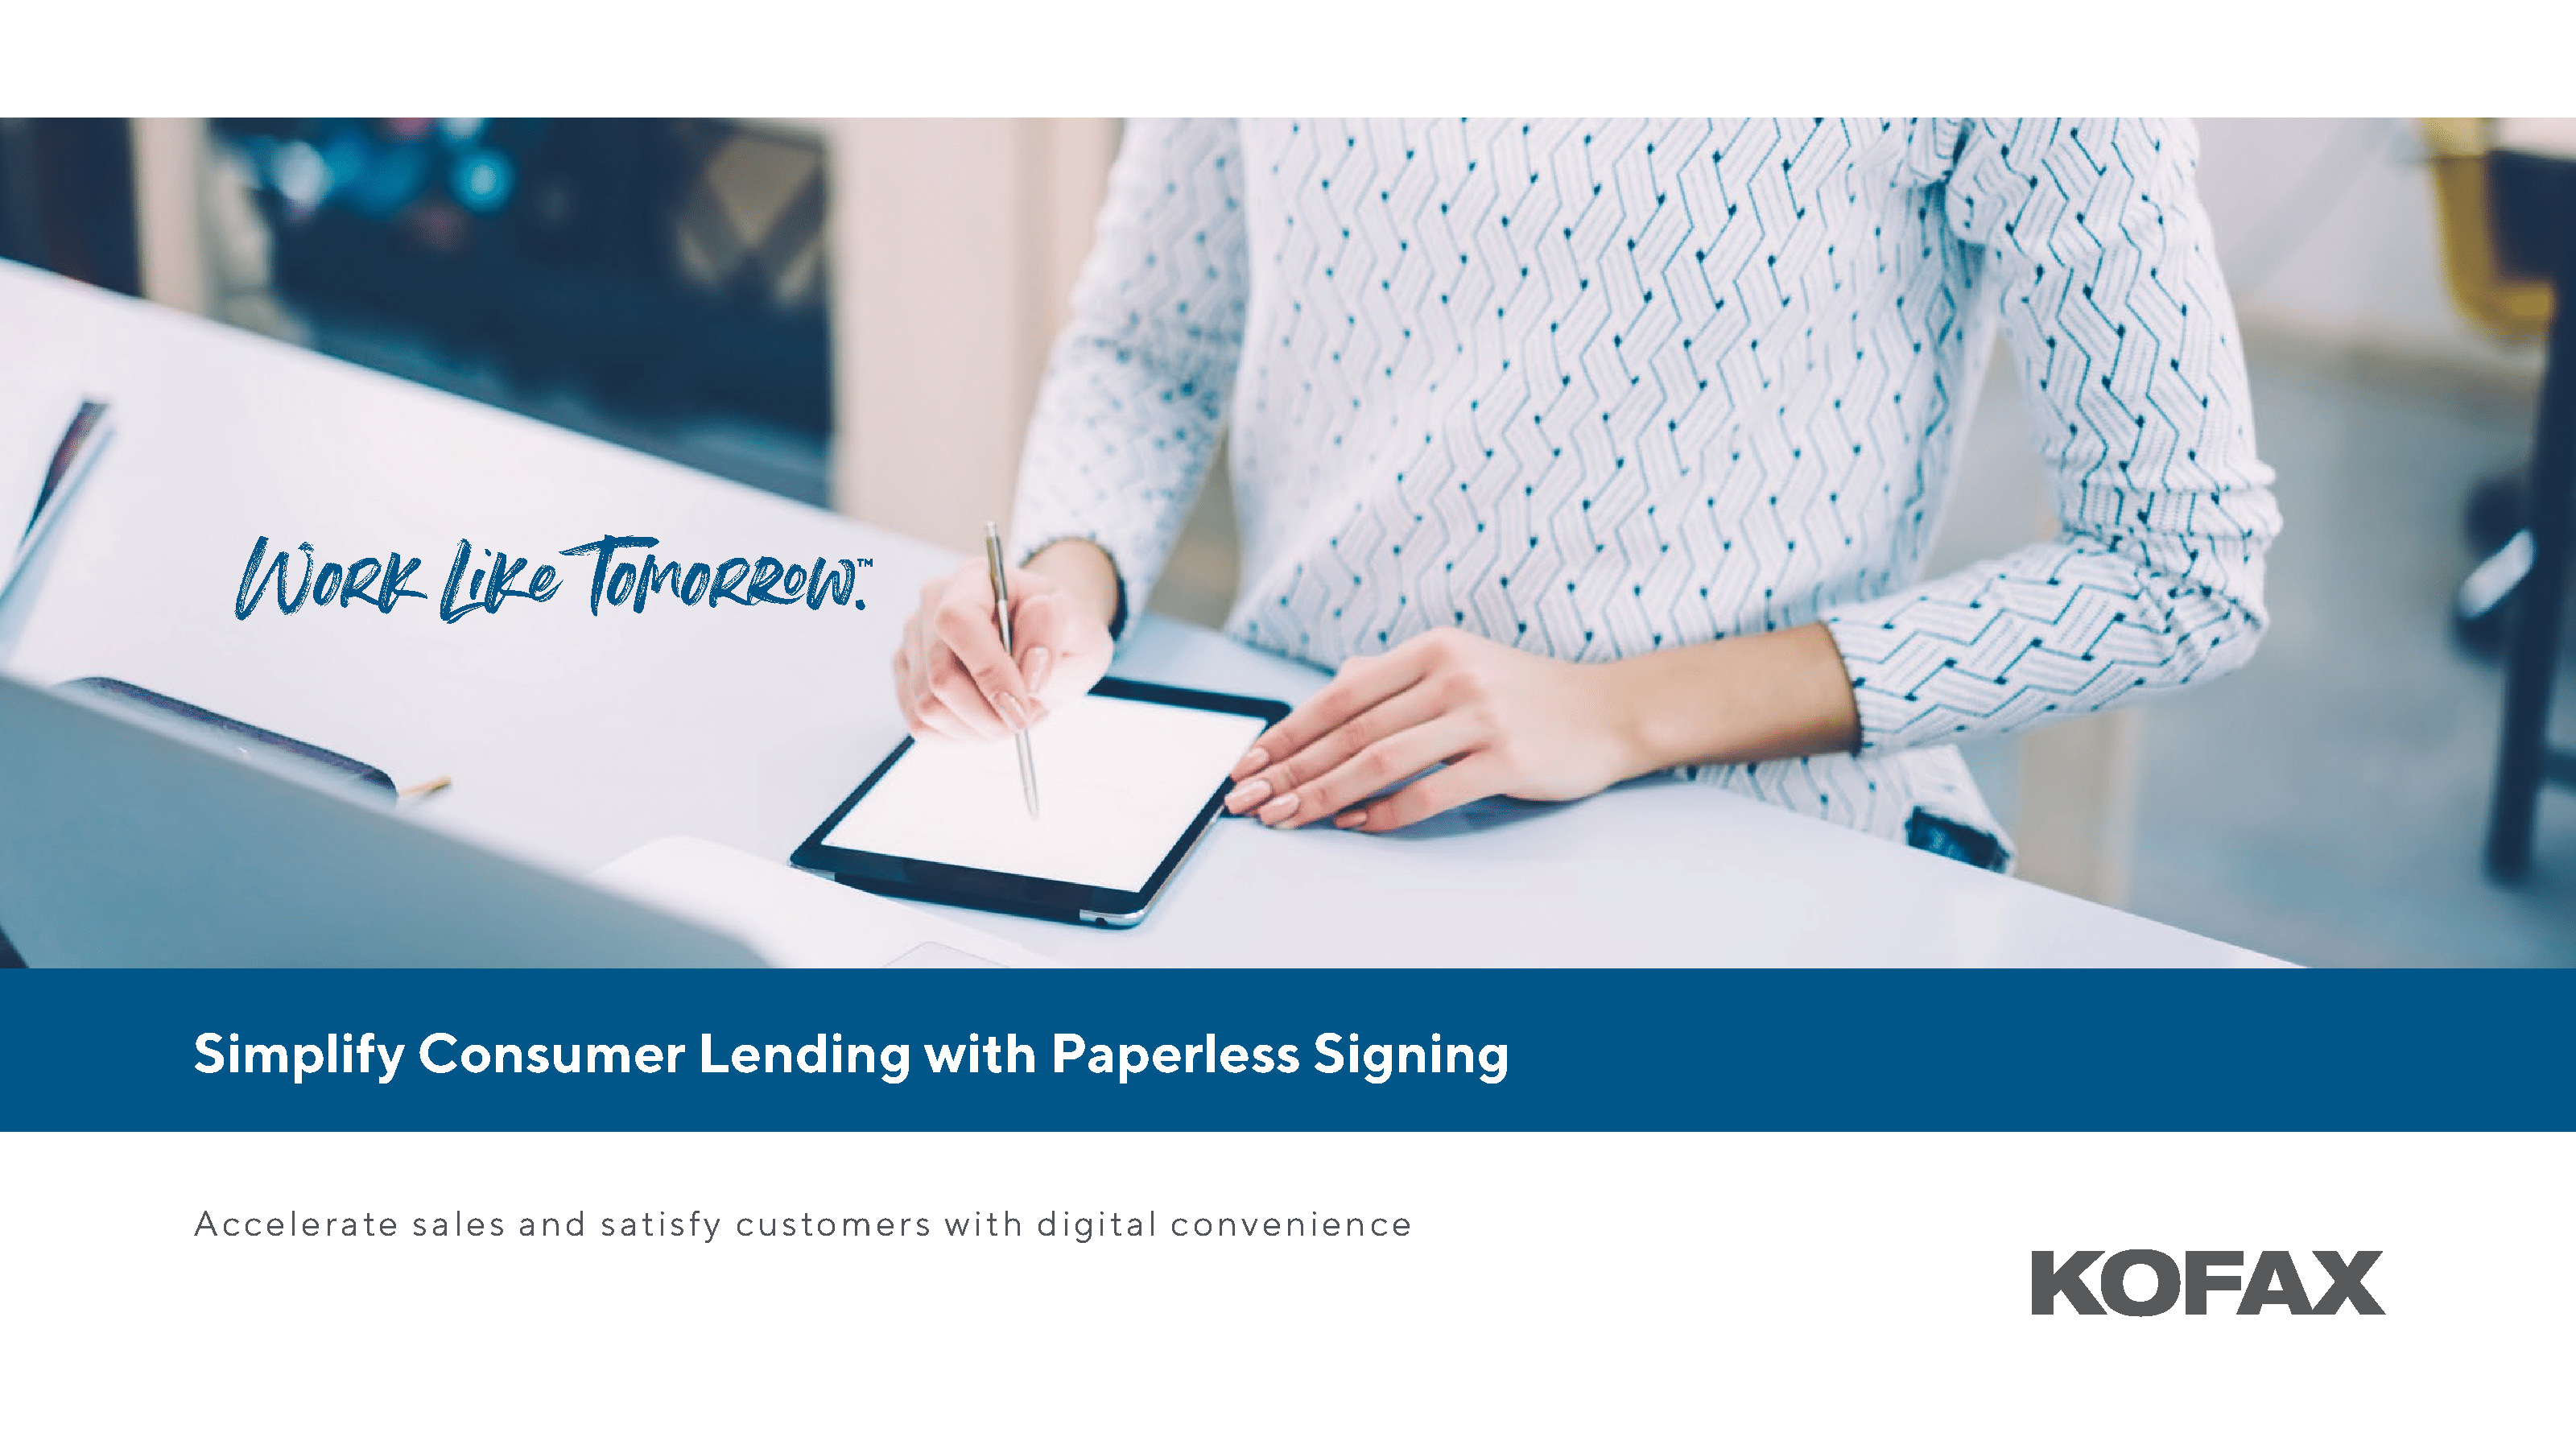 Simplifying Consumer Lending with Paperless Signing